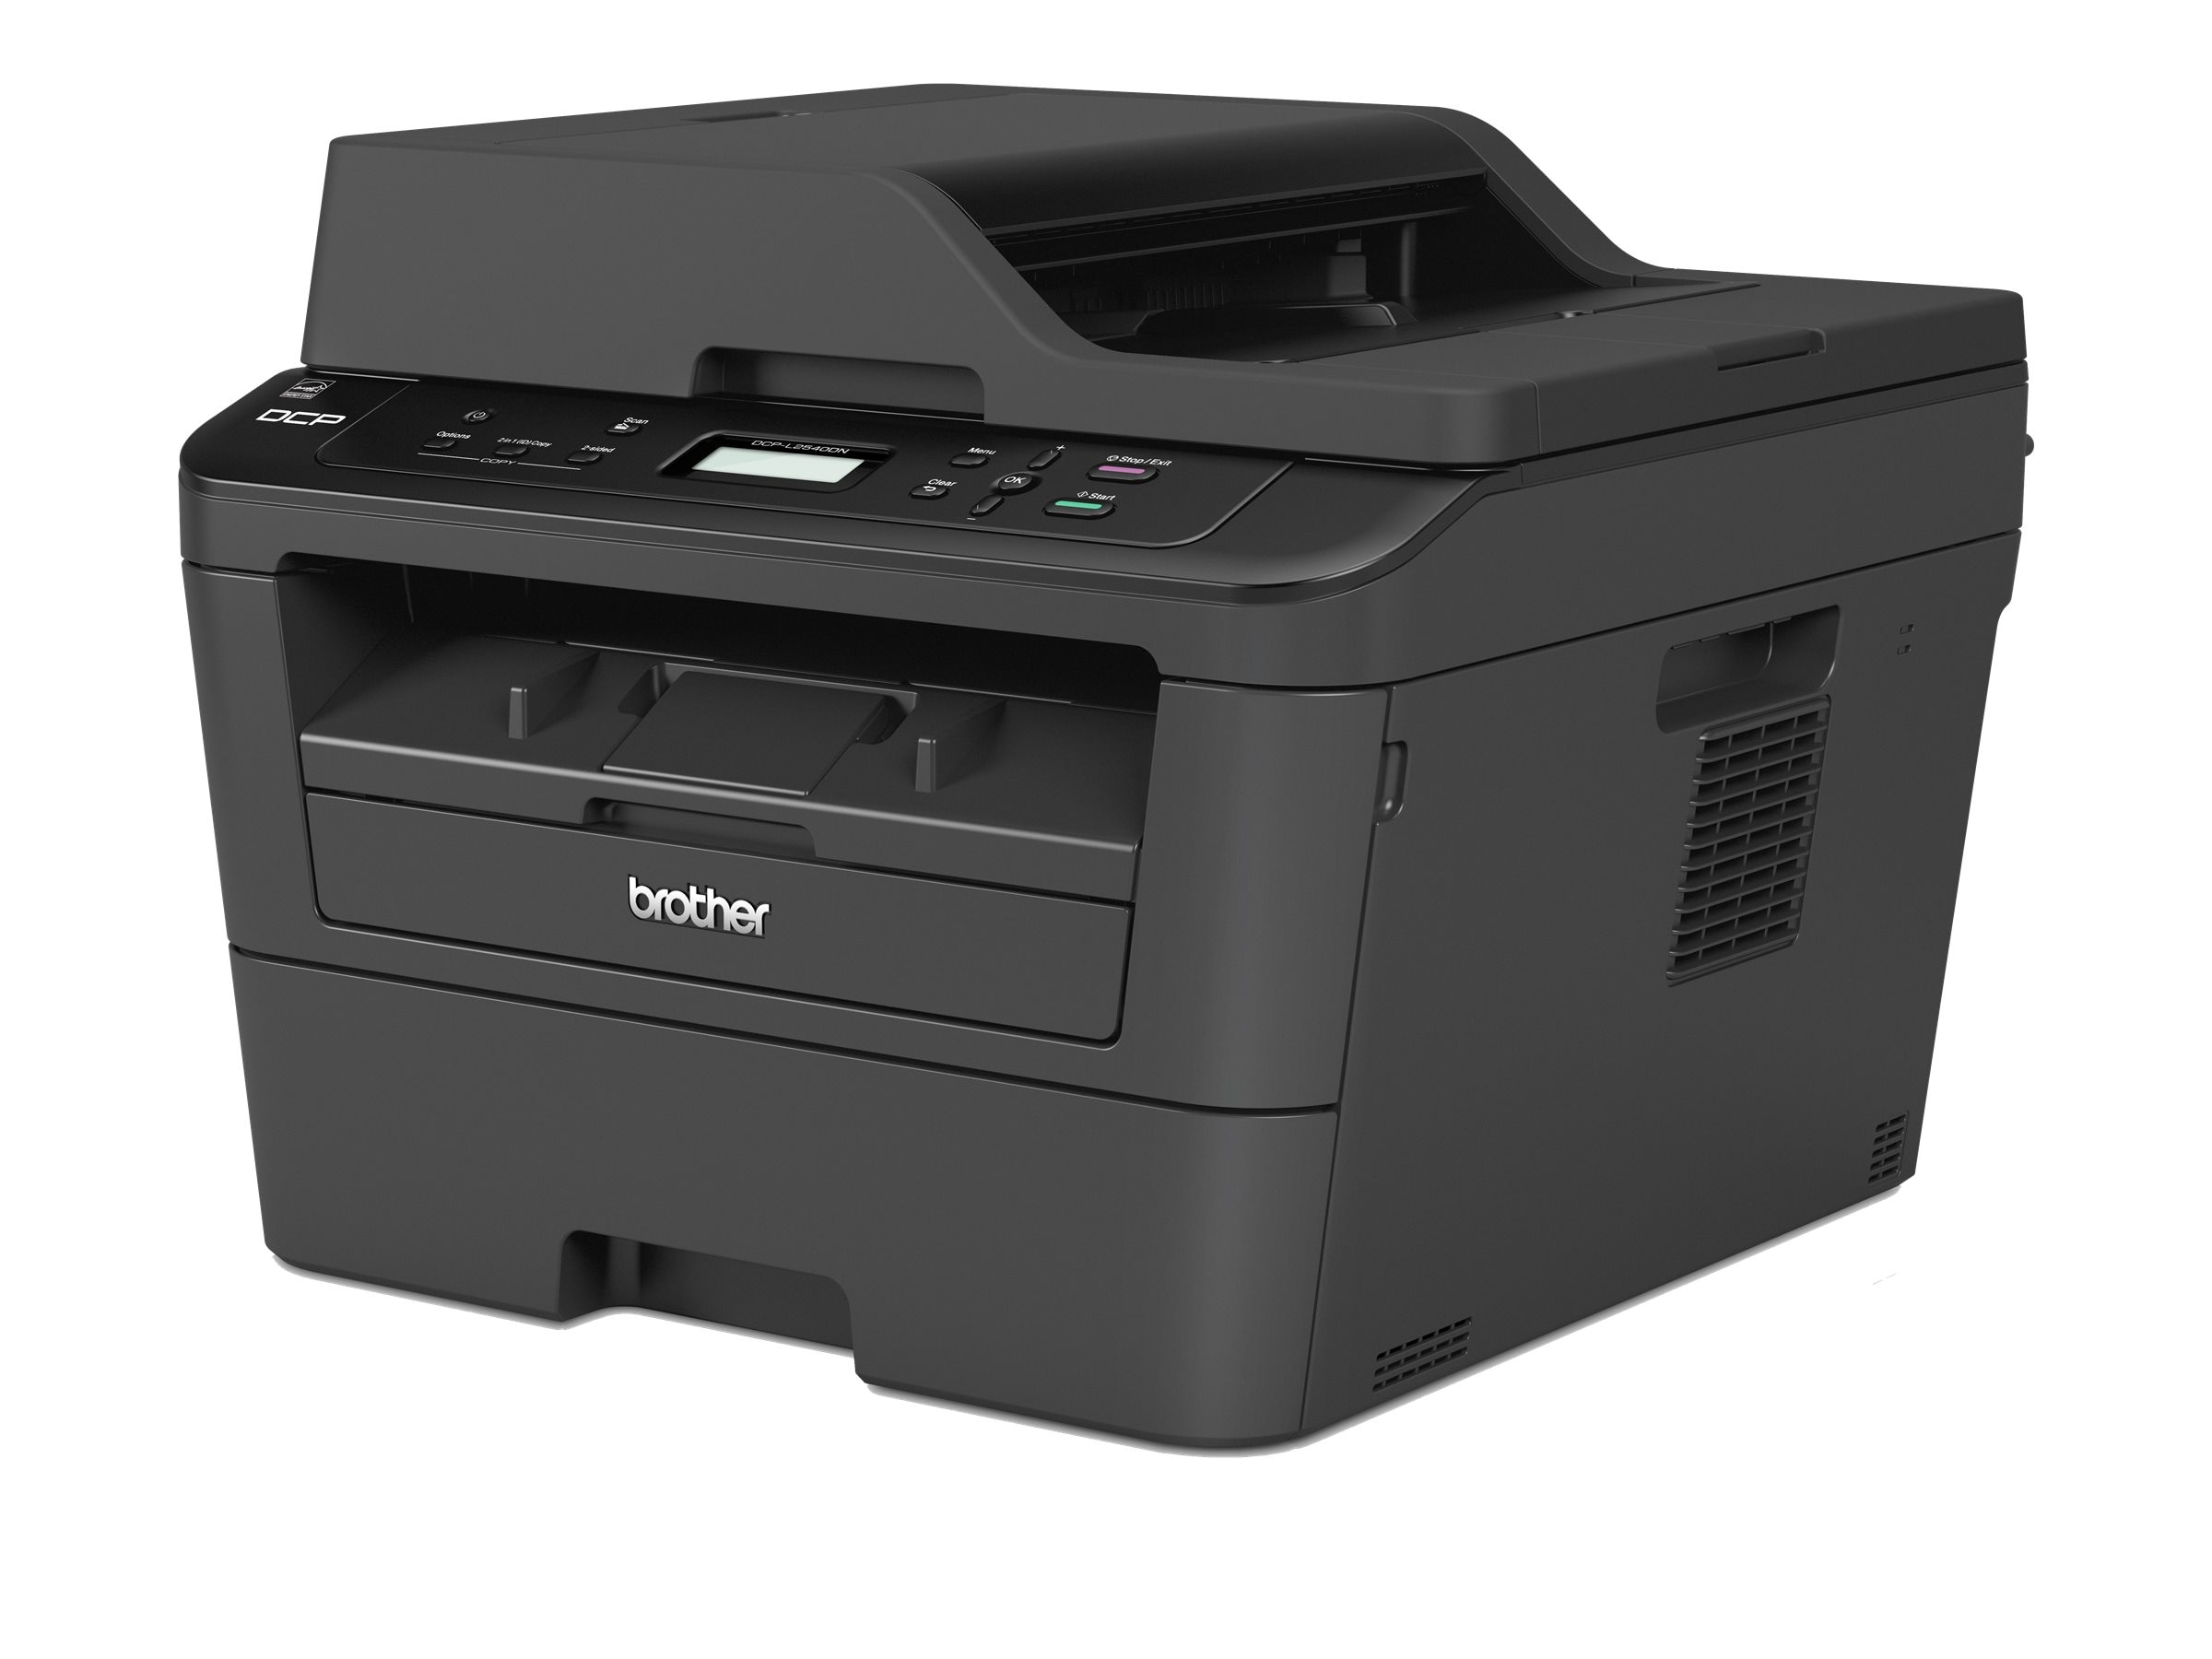 Brother DCP-L2540DW Laser Multi-Function Copier, DCPL2540DW, 17660697, MultiFunction - Laser (monochrome)